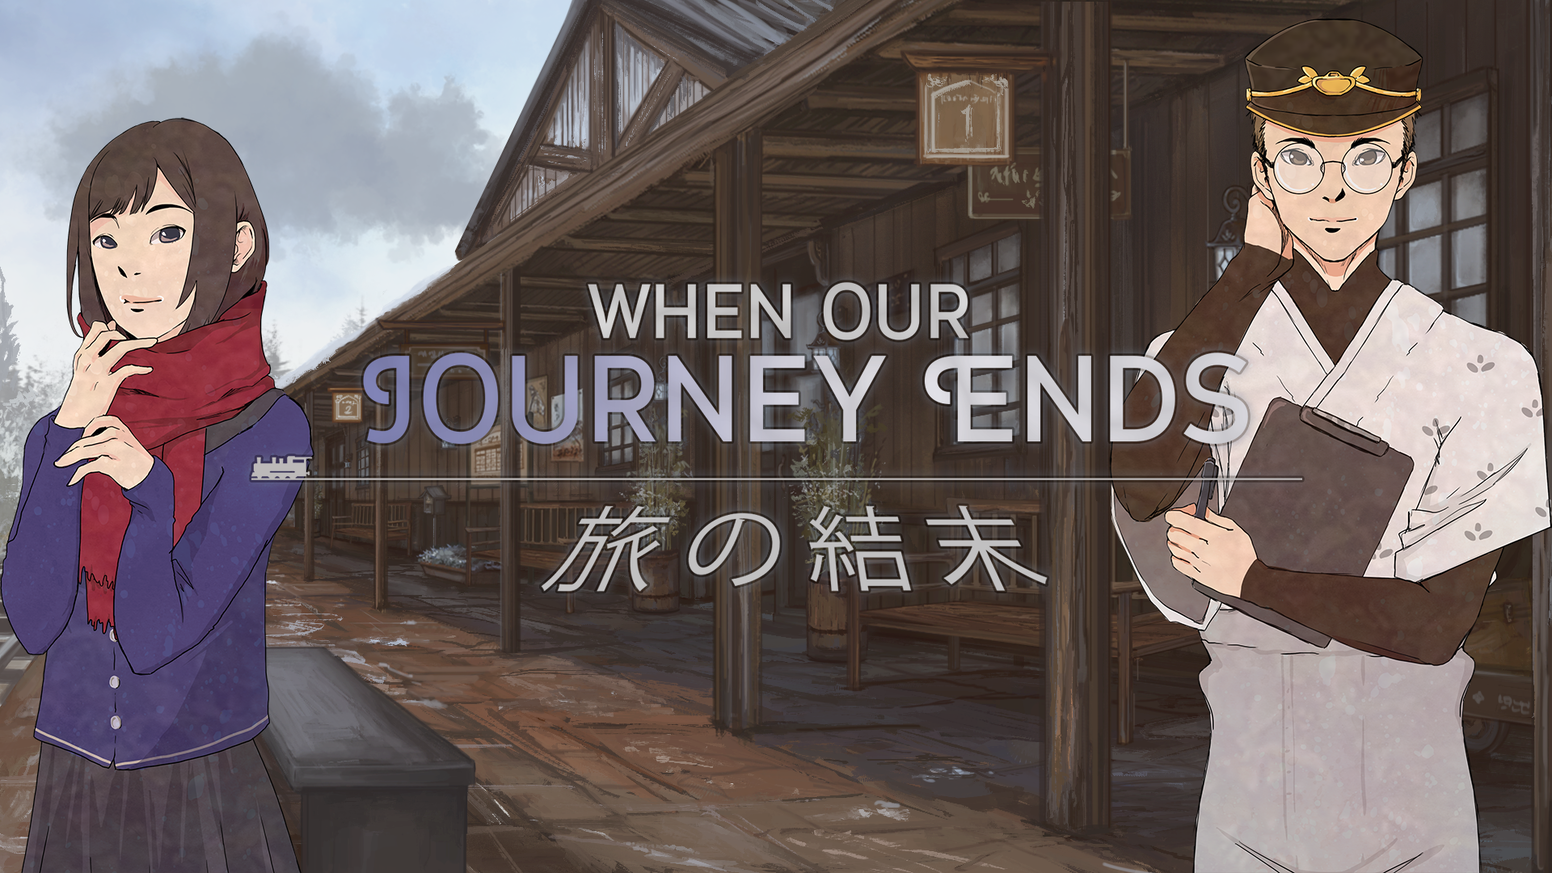 Follow Mariko as she boards a train to a completely different world - A world of unbelievable beings and happenings.